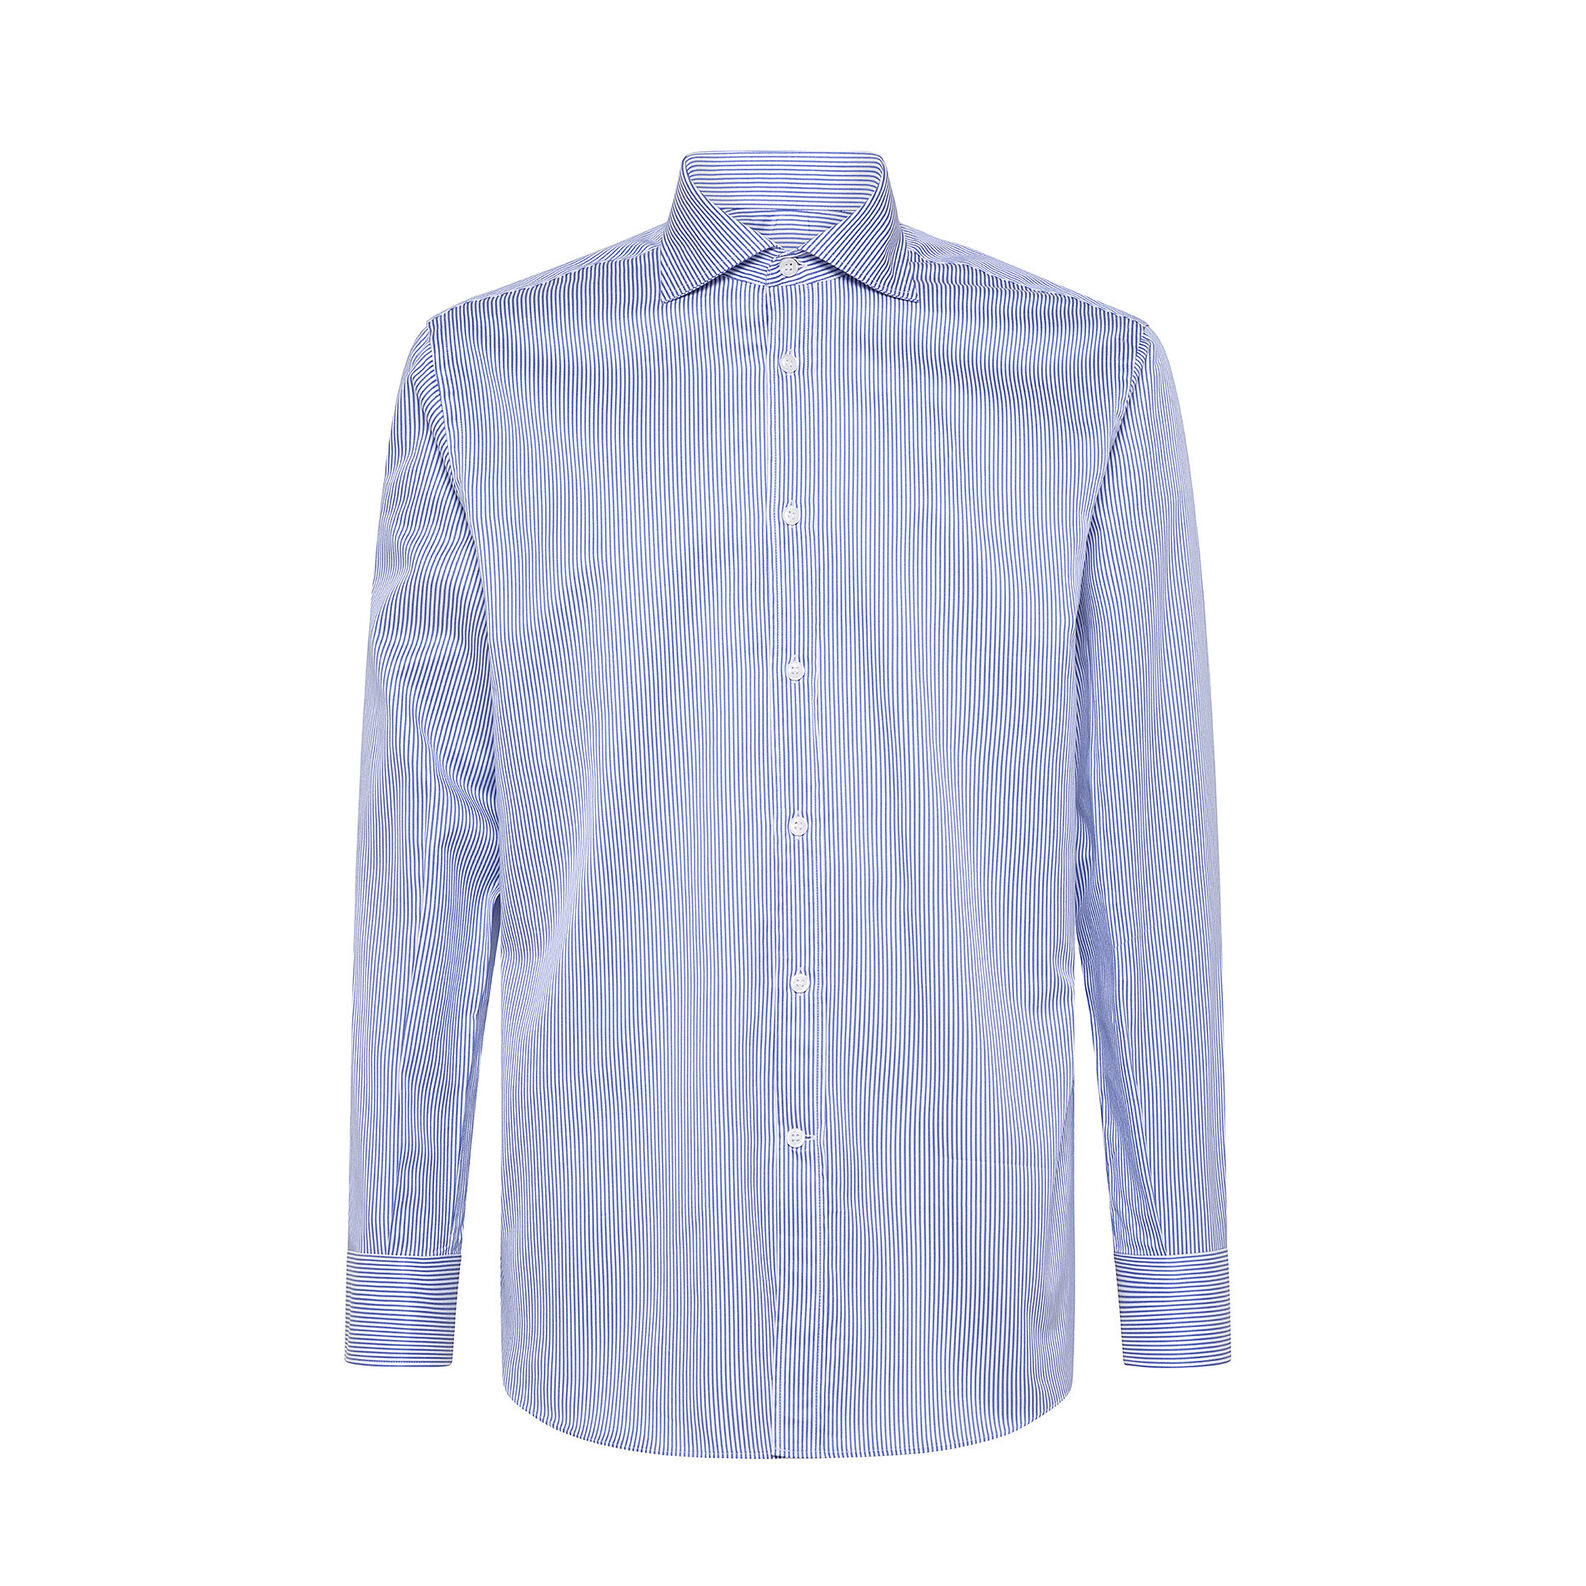 Double twisted cotton shirt